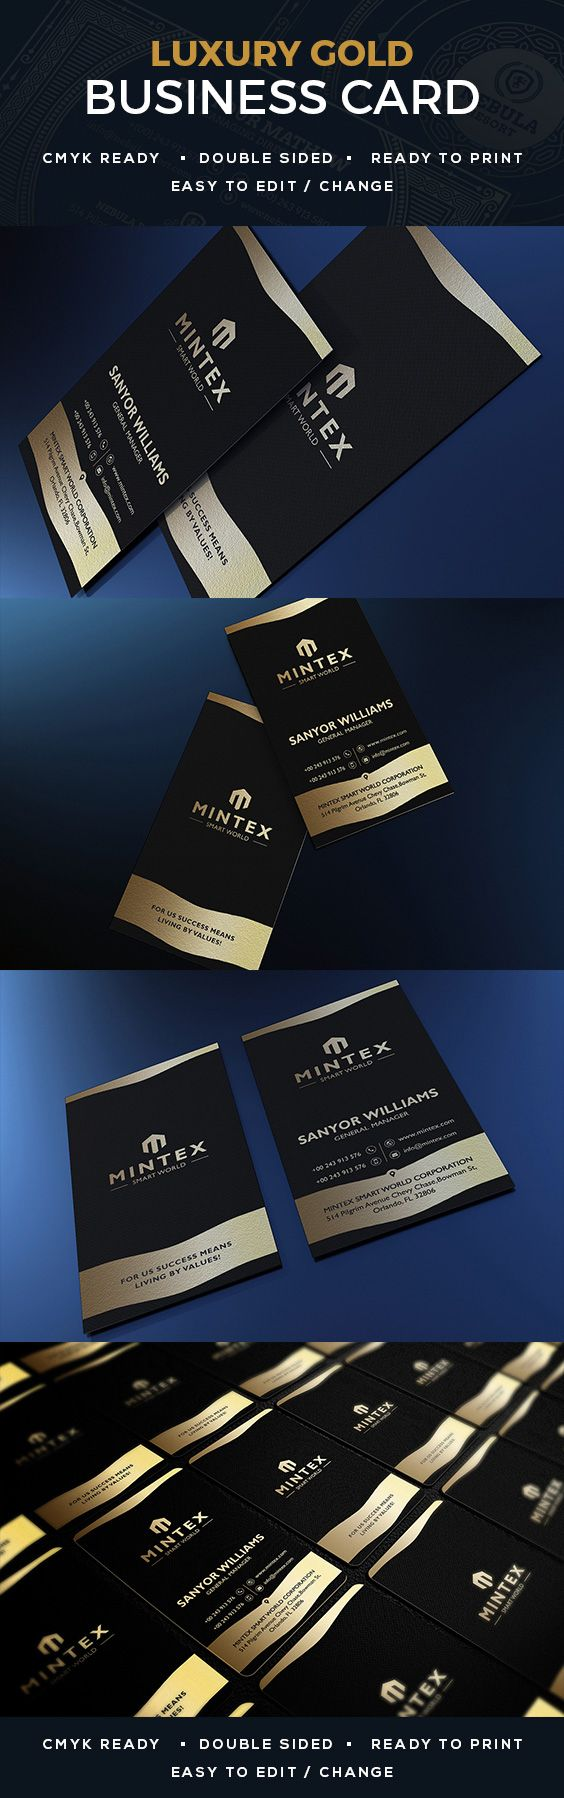 79 best Creative business cards images on Pinterest | Creative ...